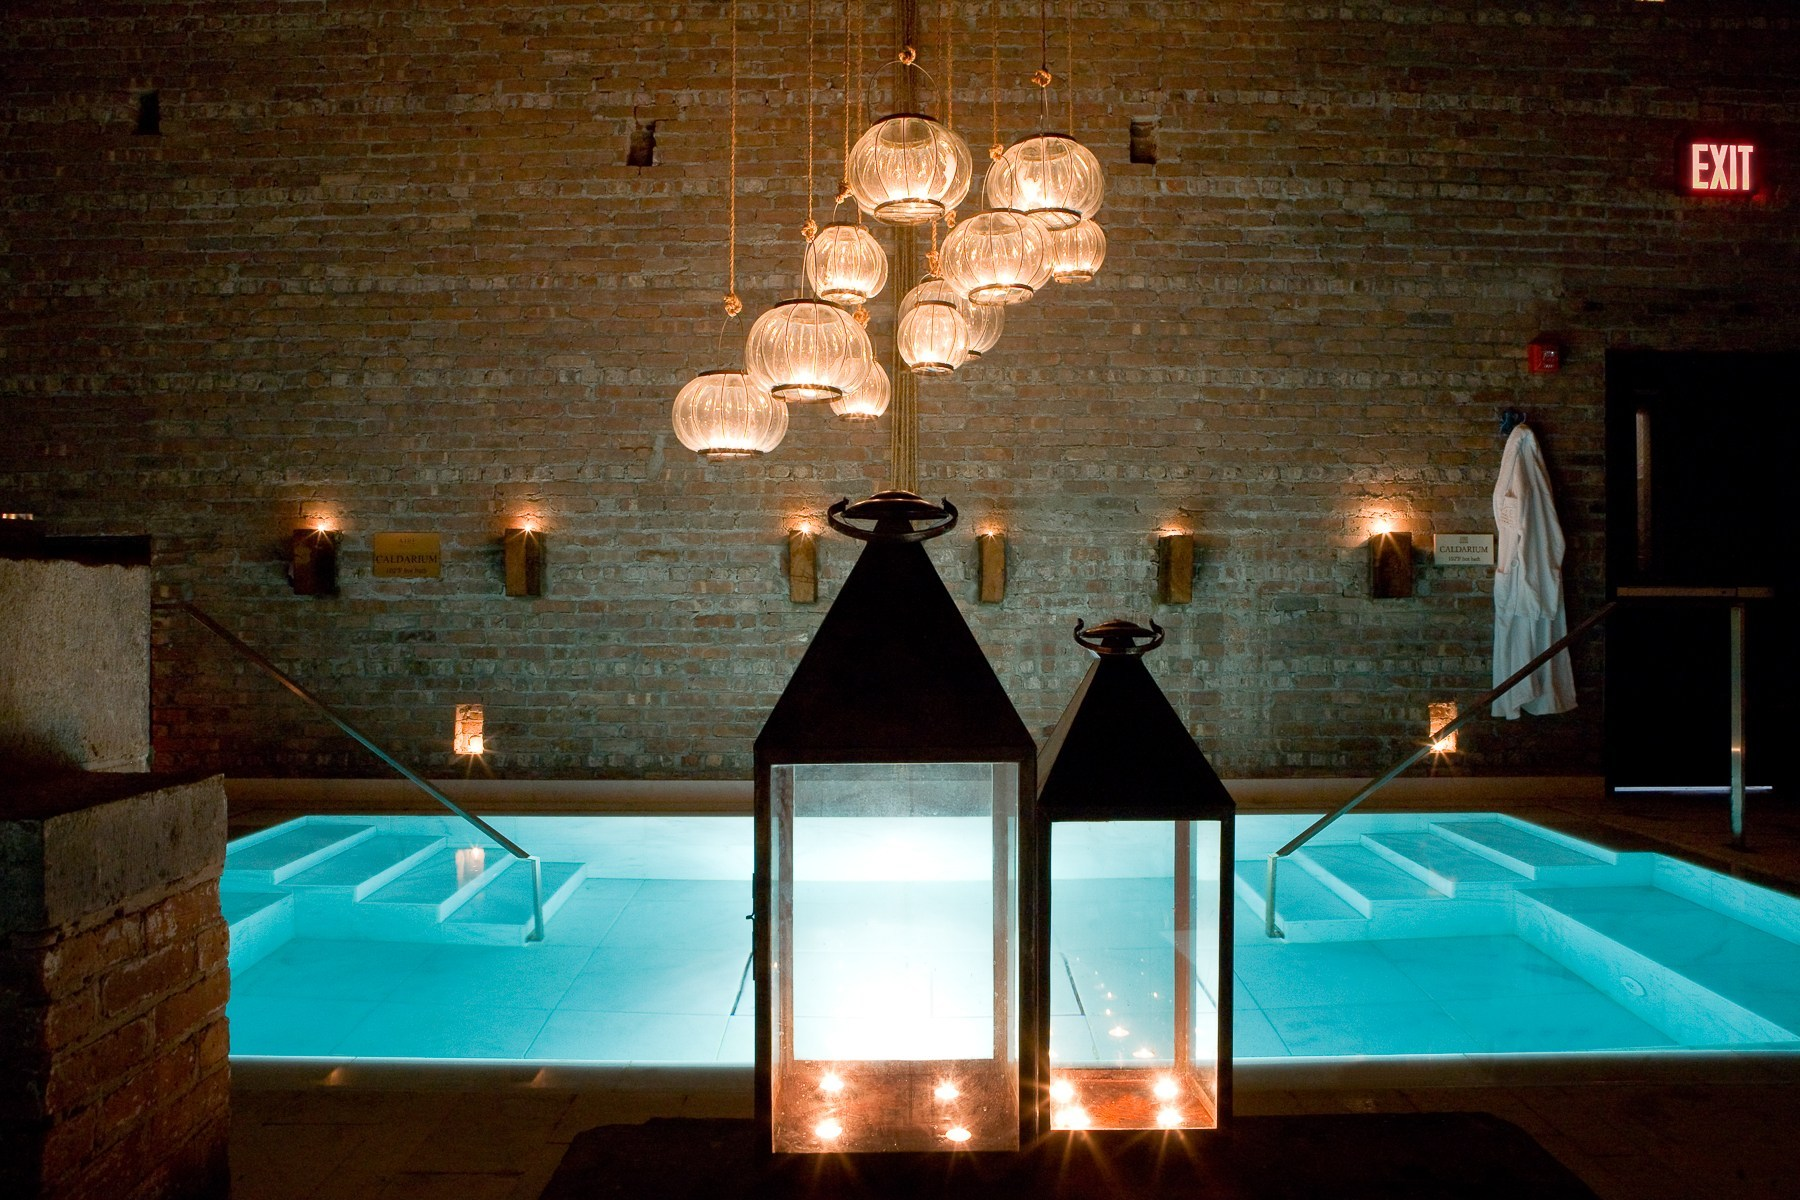 Electrify5 New York City Wellness Havens to Chill Out and Warm Up This Winter -